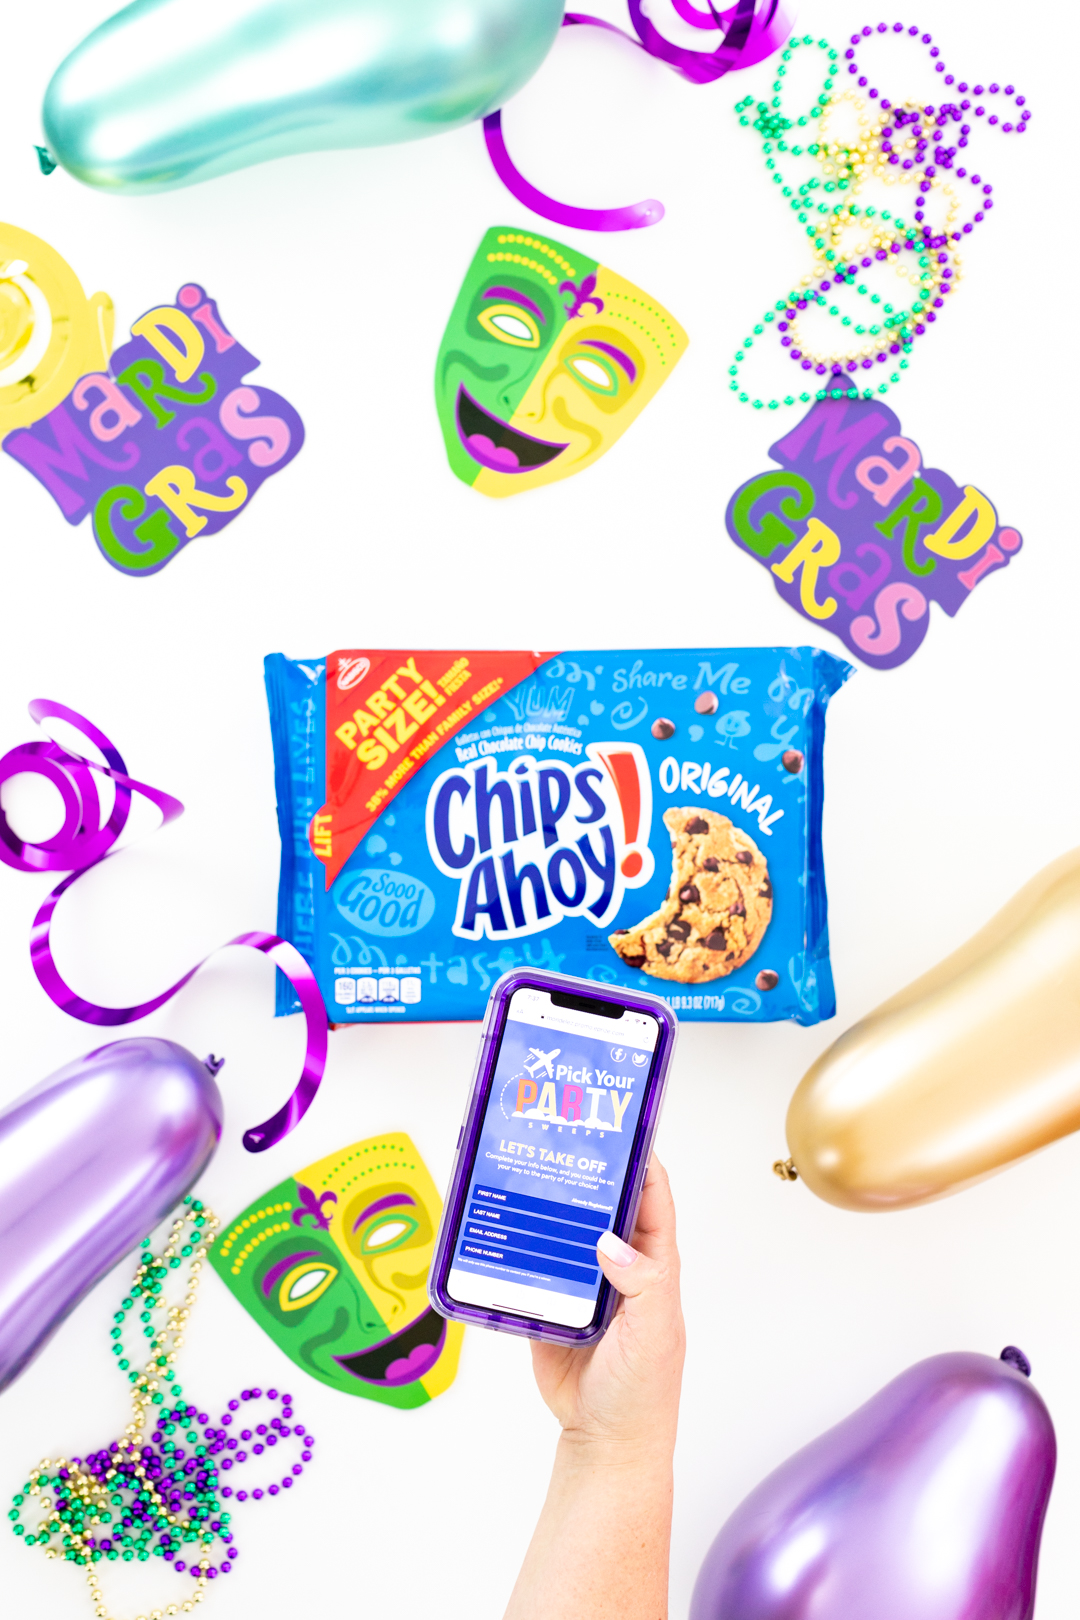 Party sized chips ahoy! packages